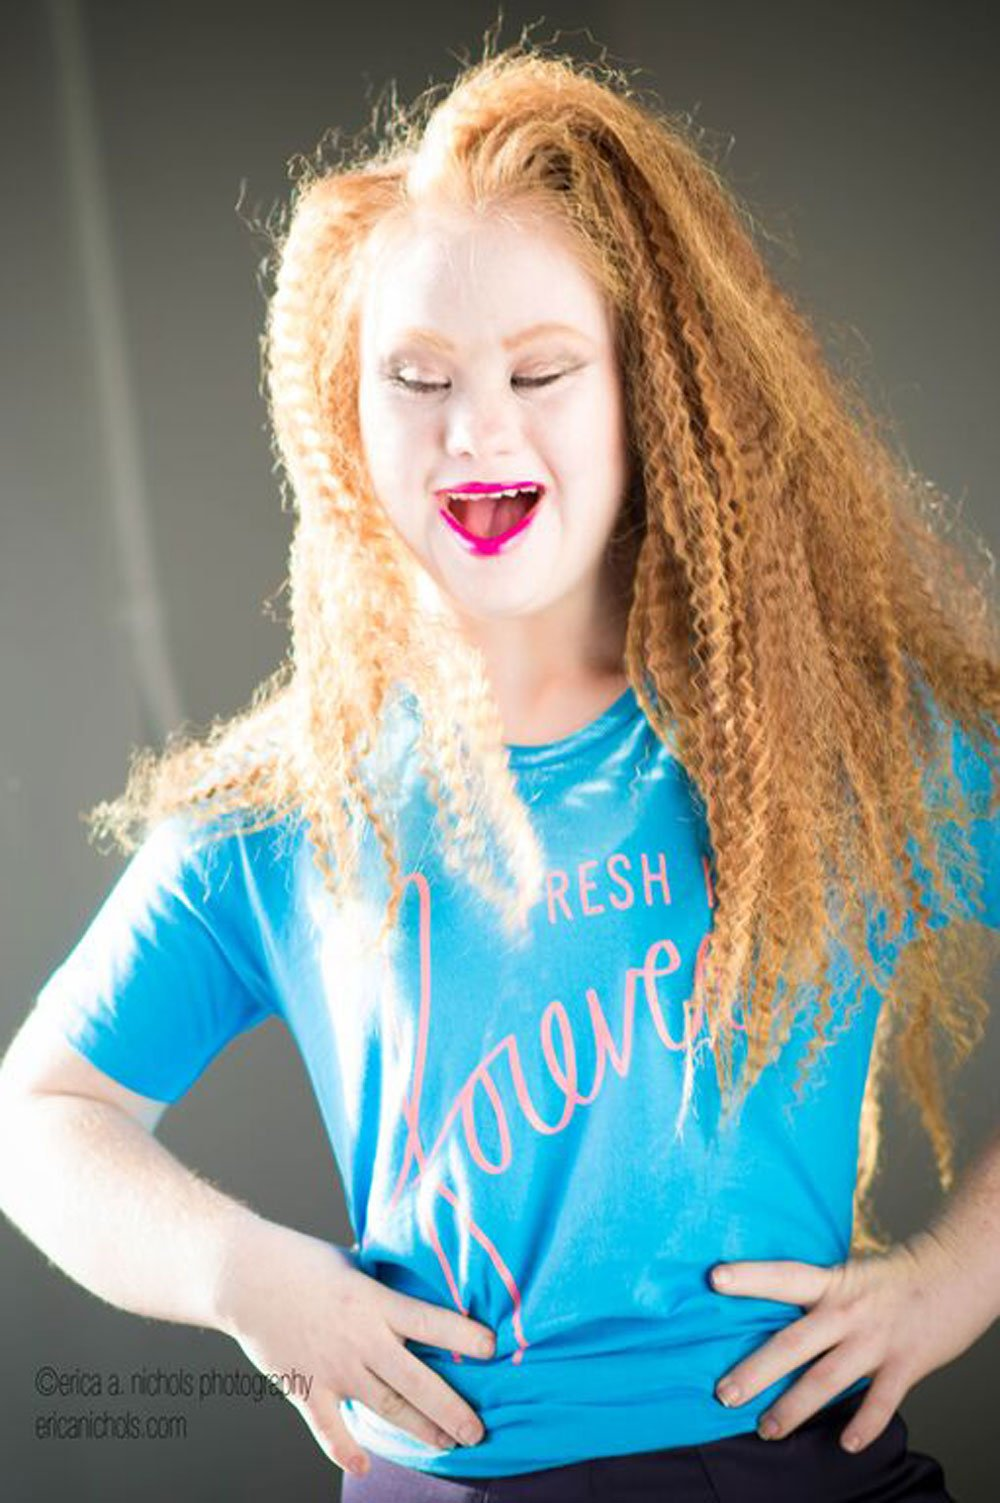 18 Year Old Model With Down Syndrome Will Walk At New York